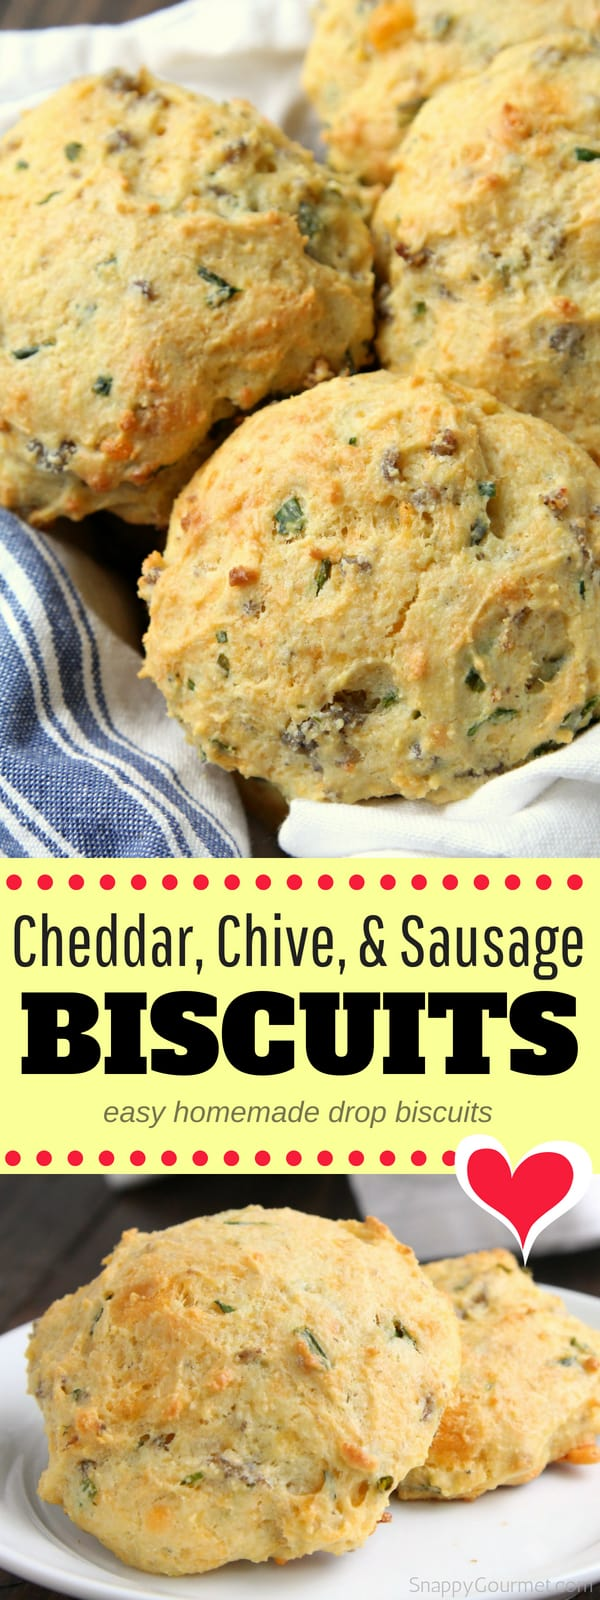 Homemade Cheddar, Chive, & Sausage Biscuits - easy homemade drop biscuit recipe